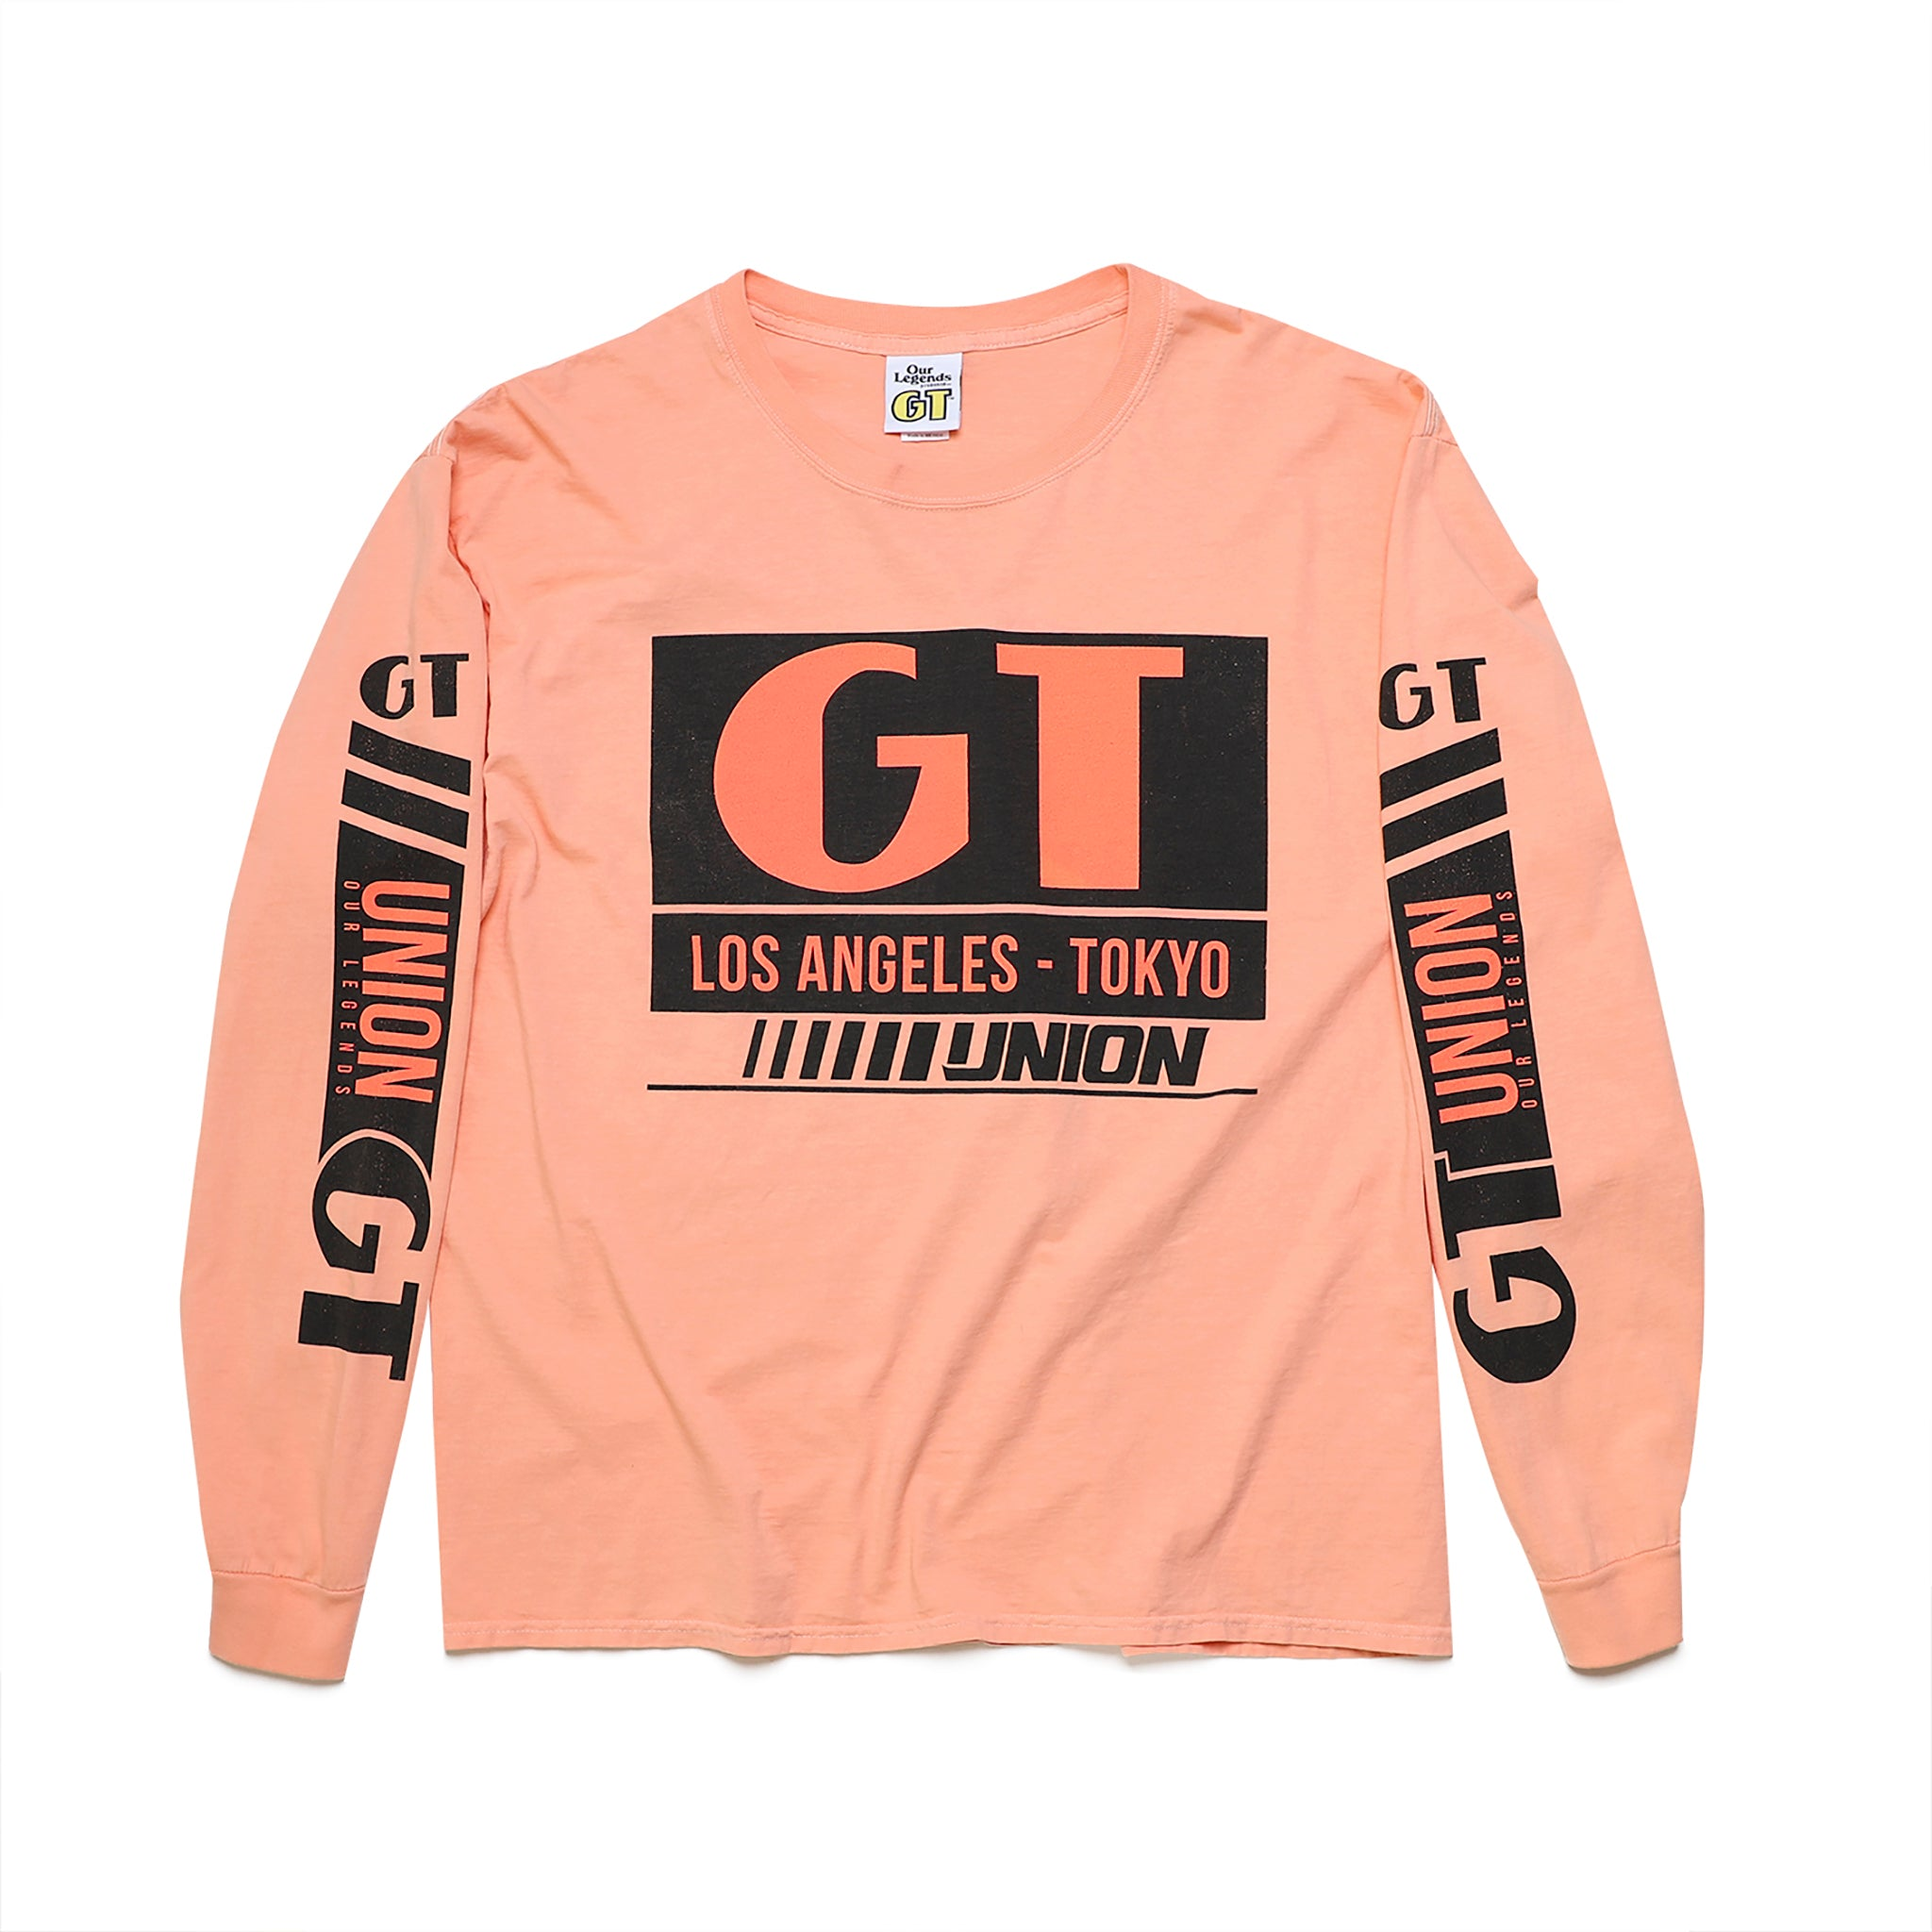 GT x UNION Team Long Sleeve - Pastel Peach